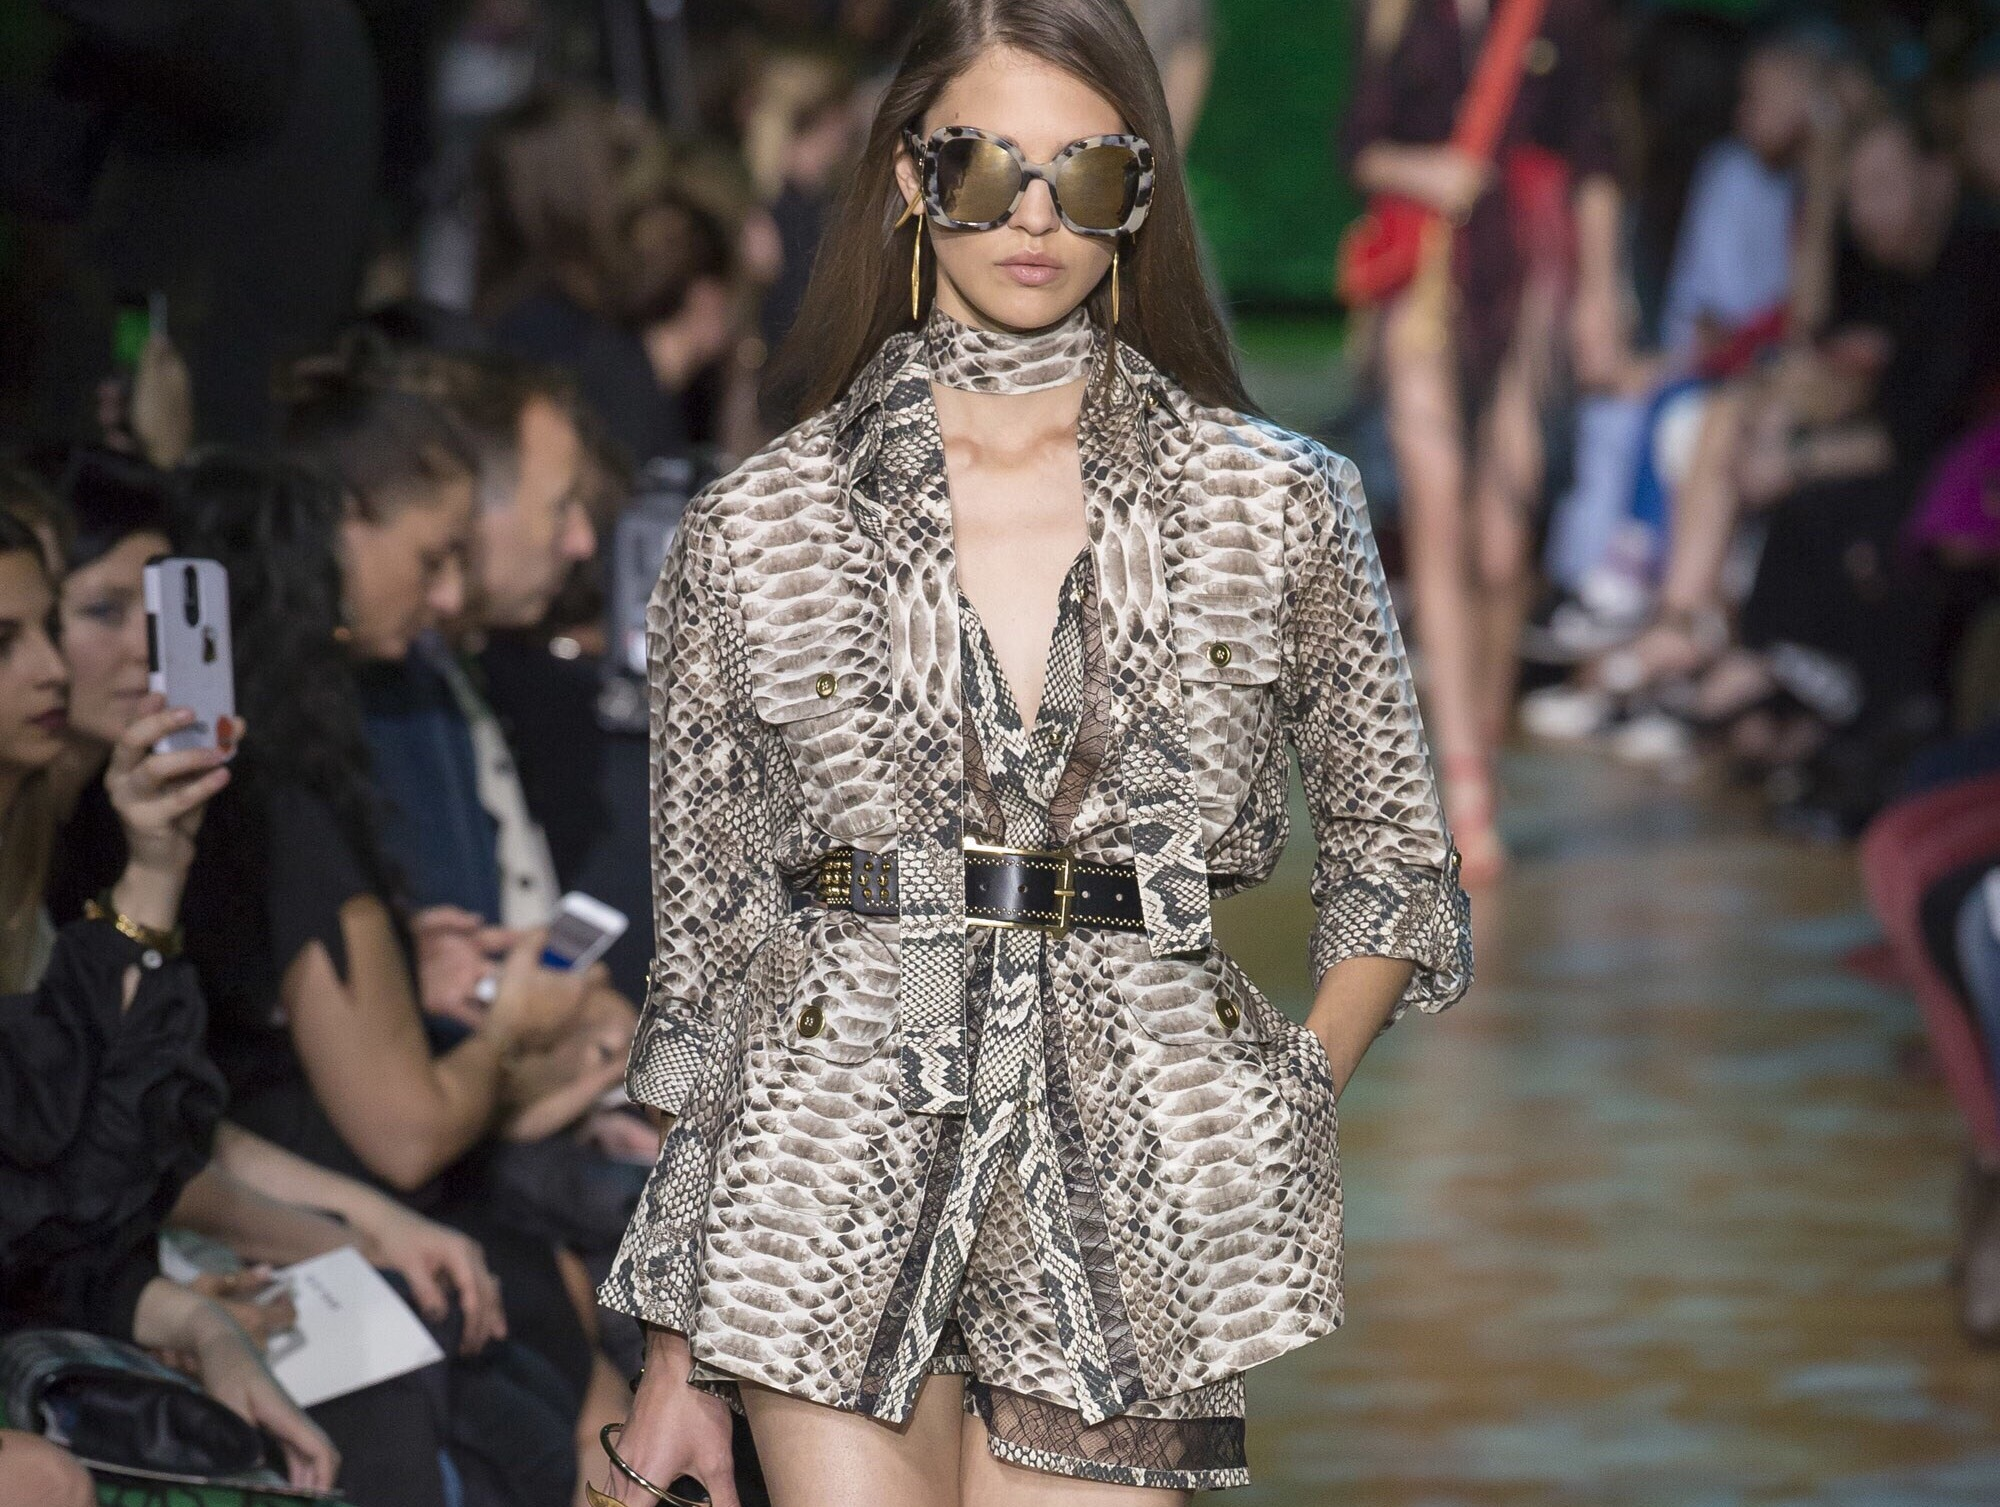 The Snake Skin Trend of 2018